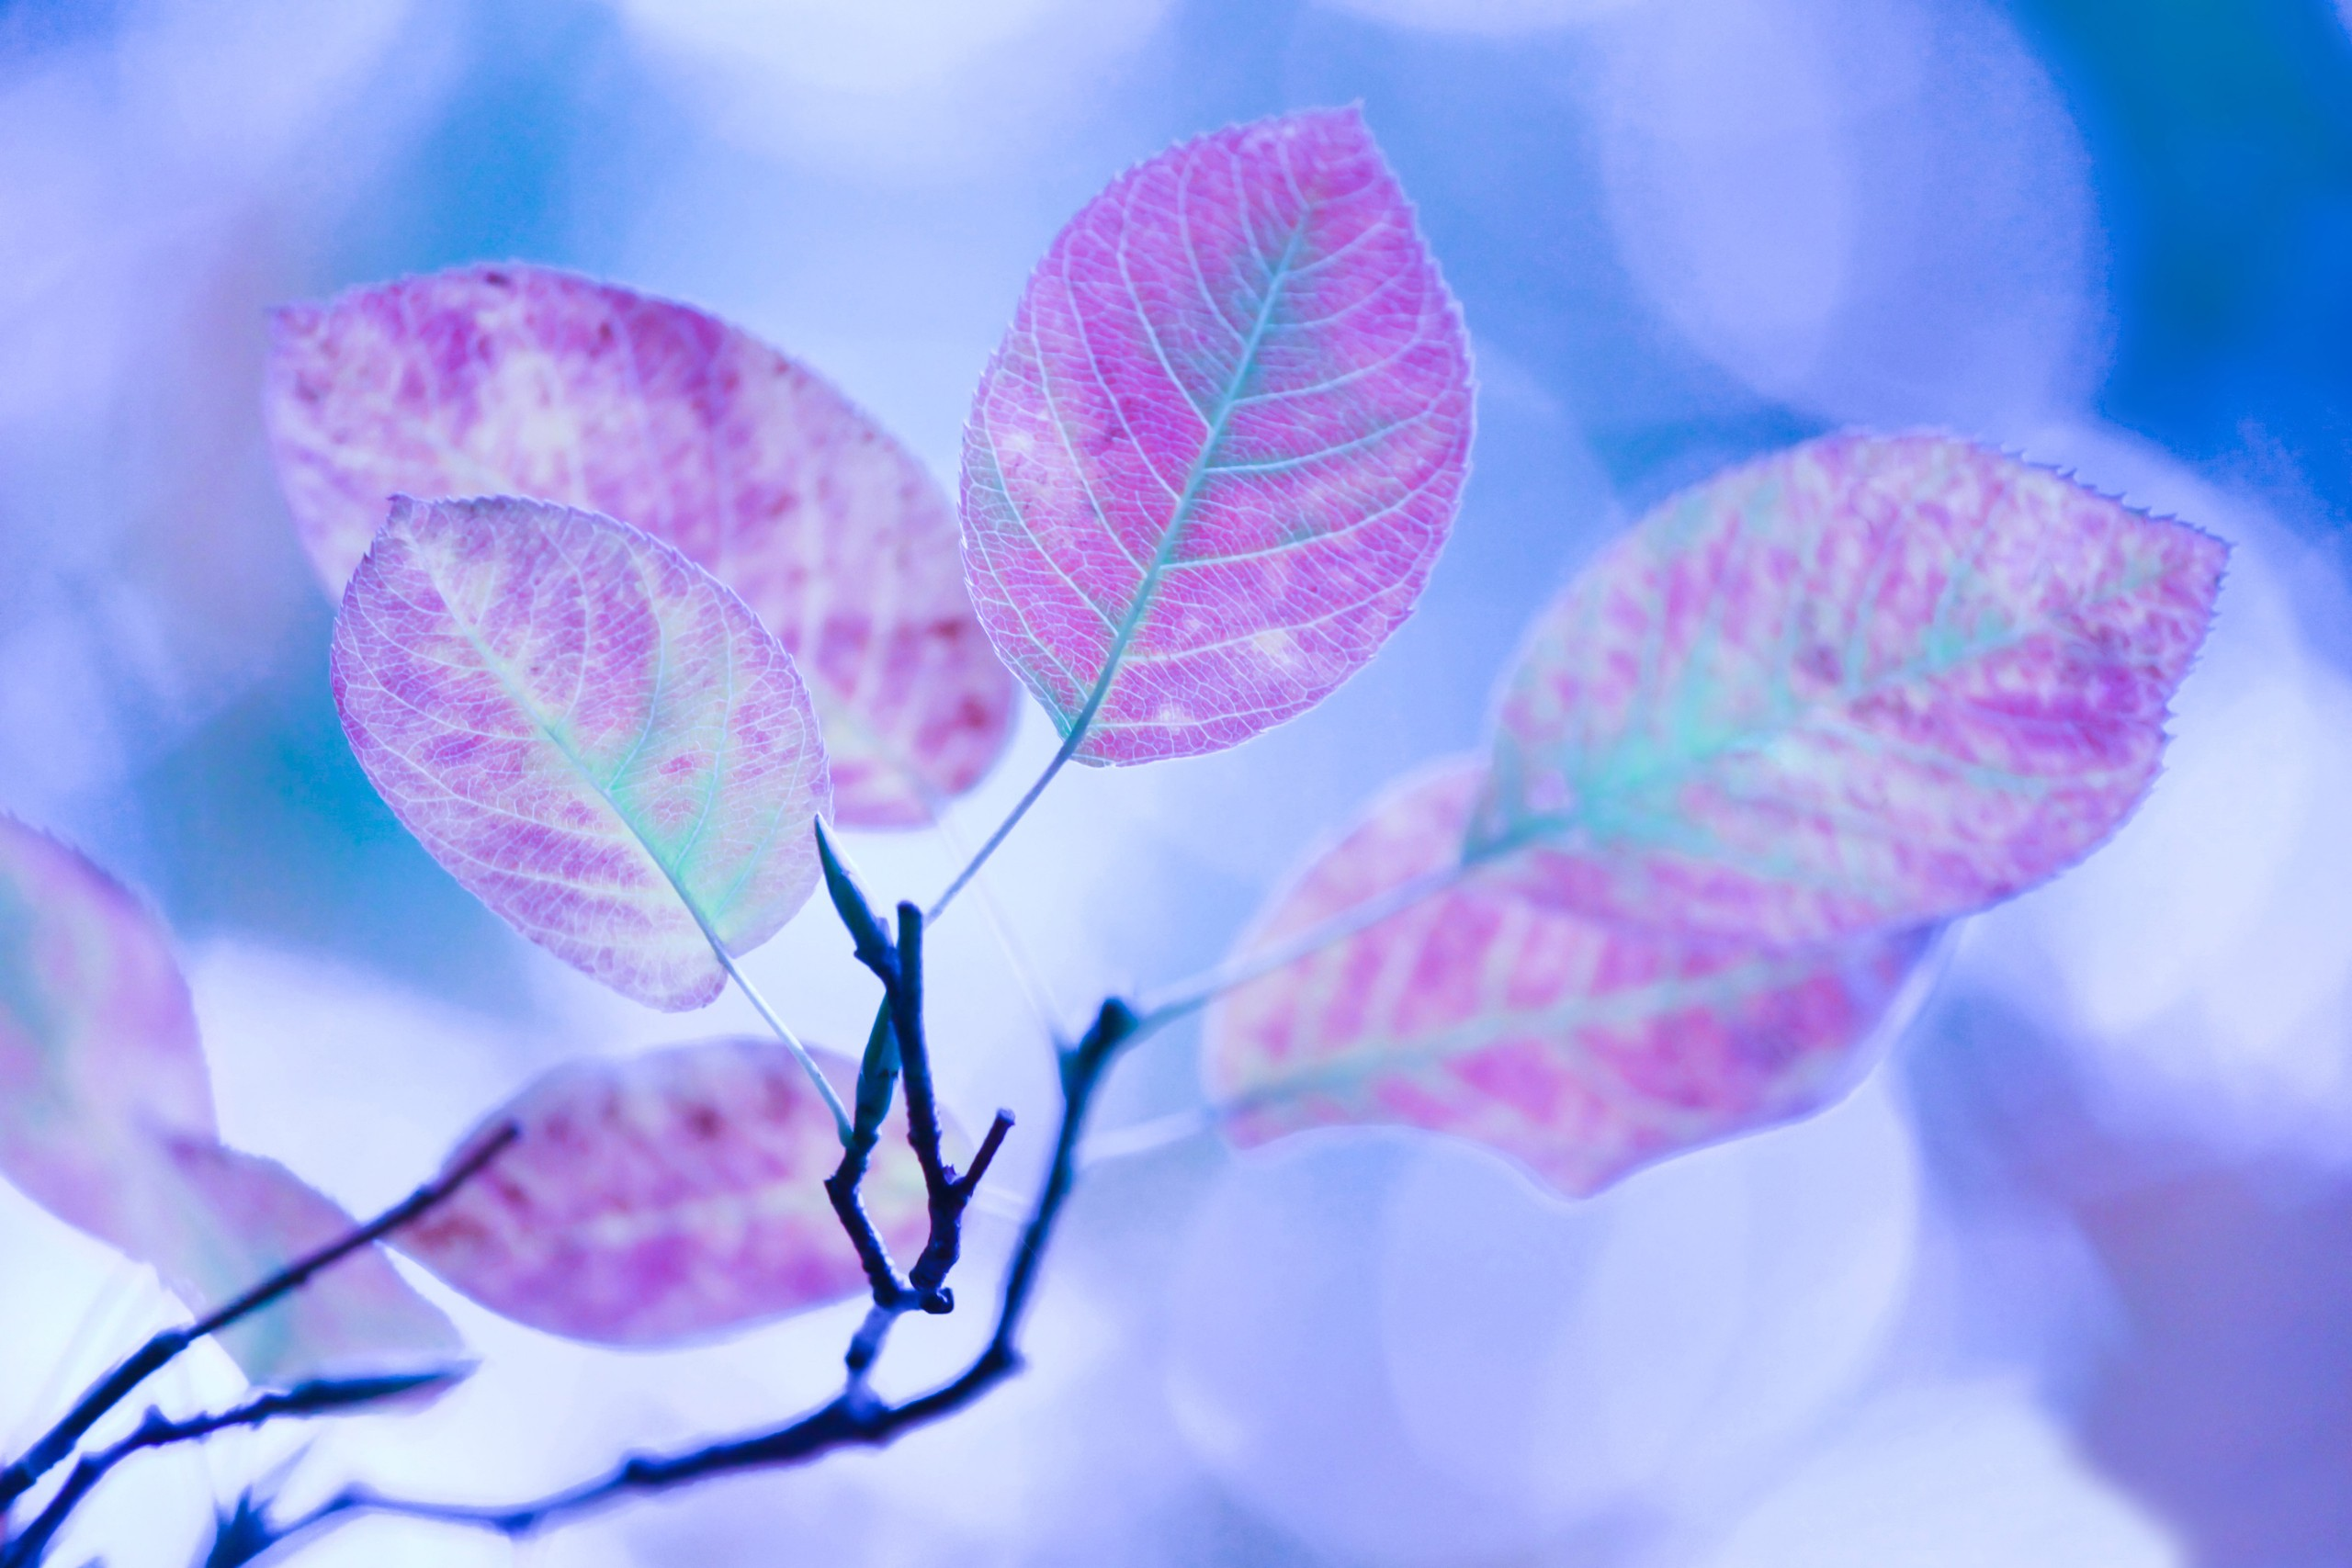 Lg Animated Wallpaper Leaf Hd Wallpaper Background Image 2560x1707 Id